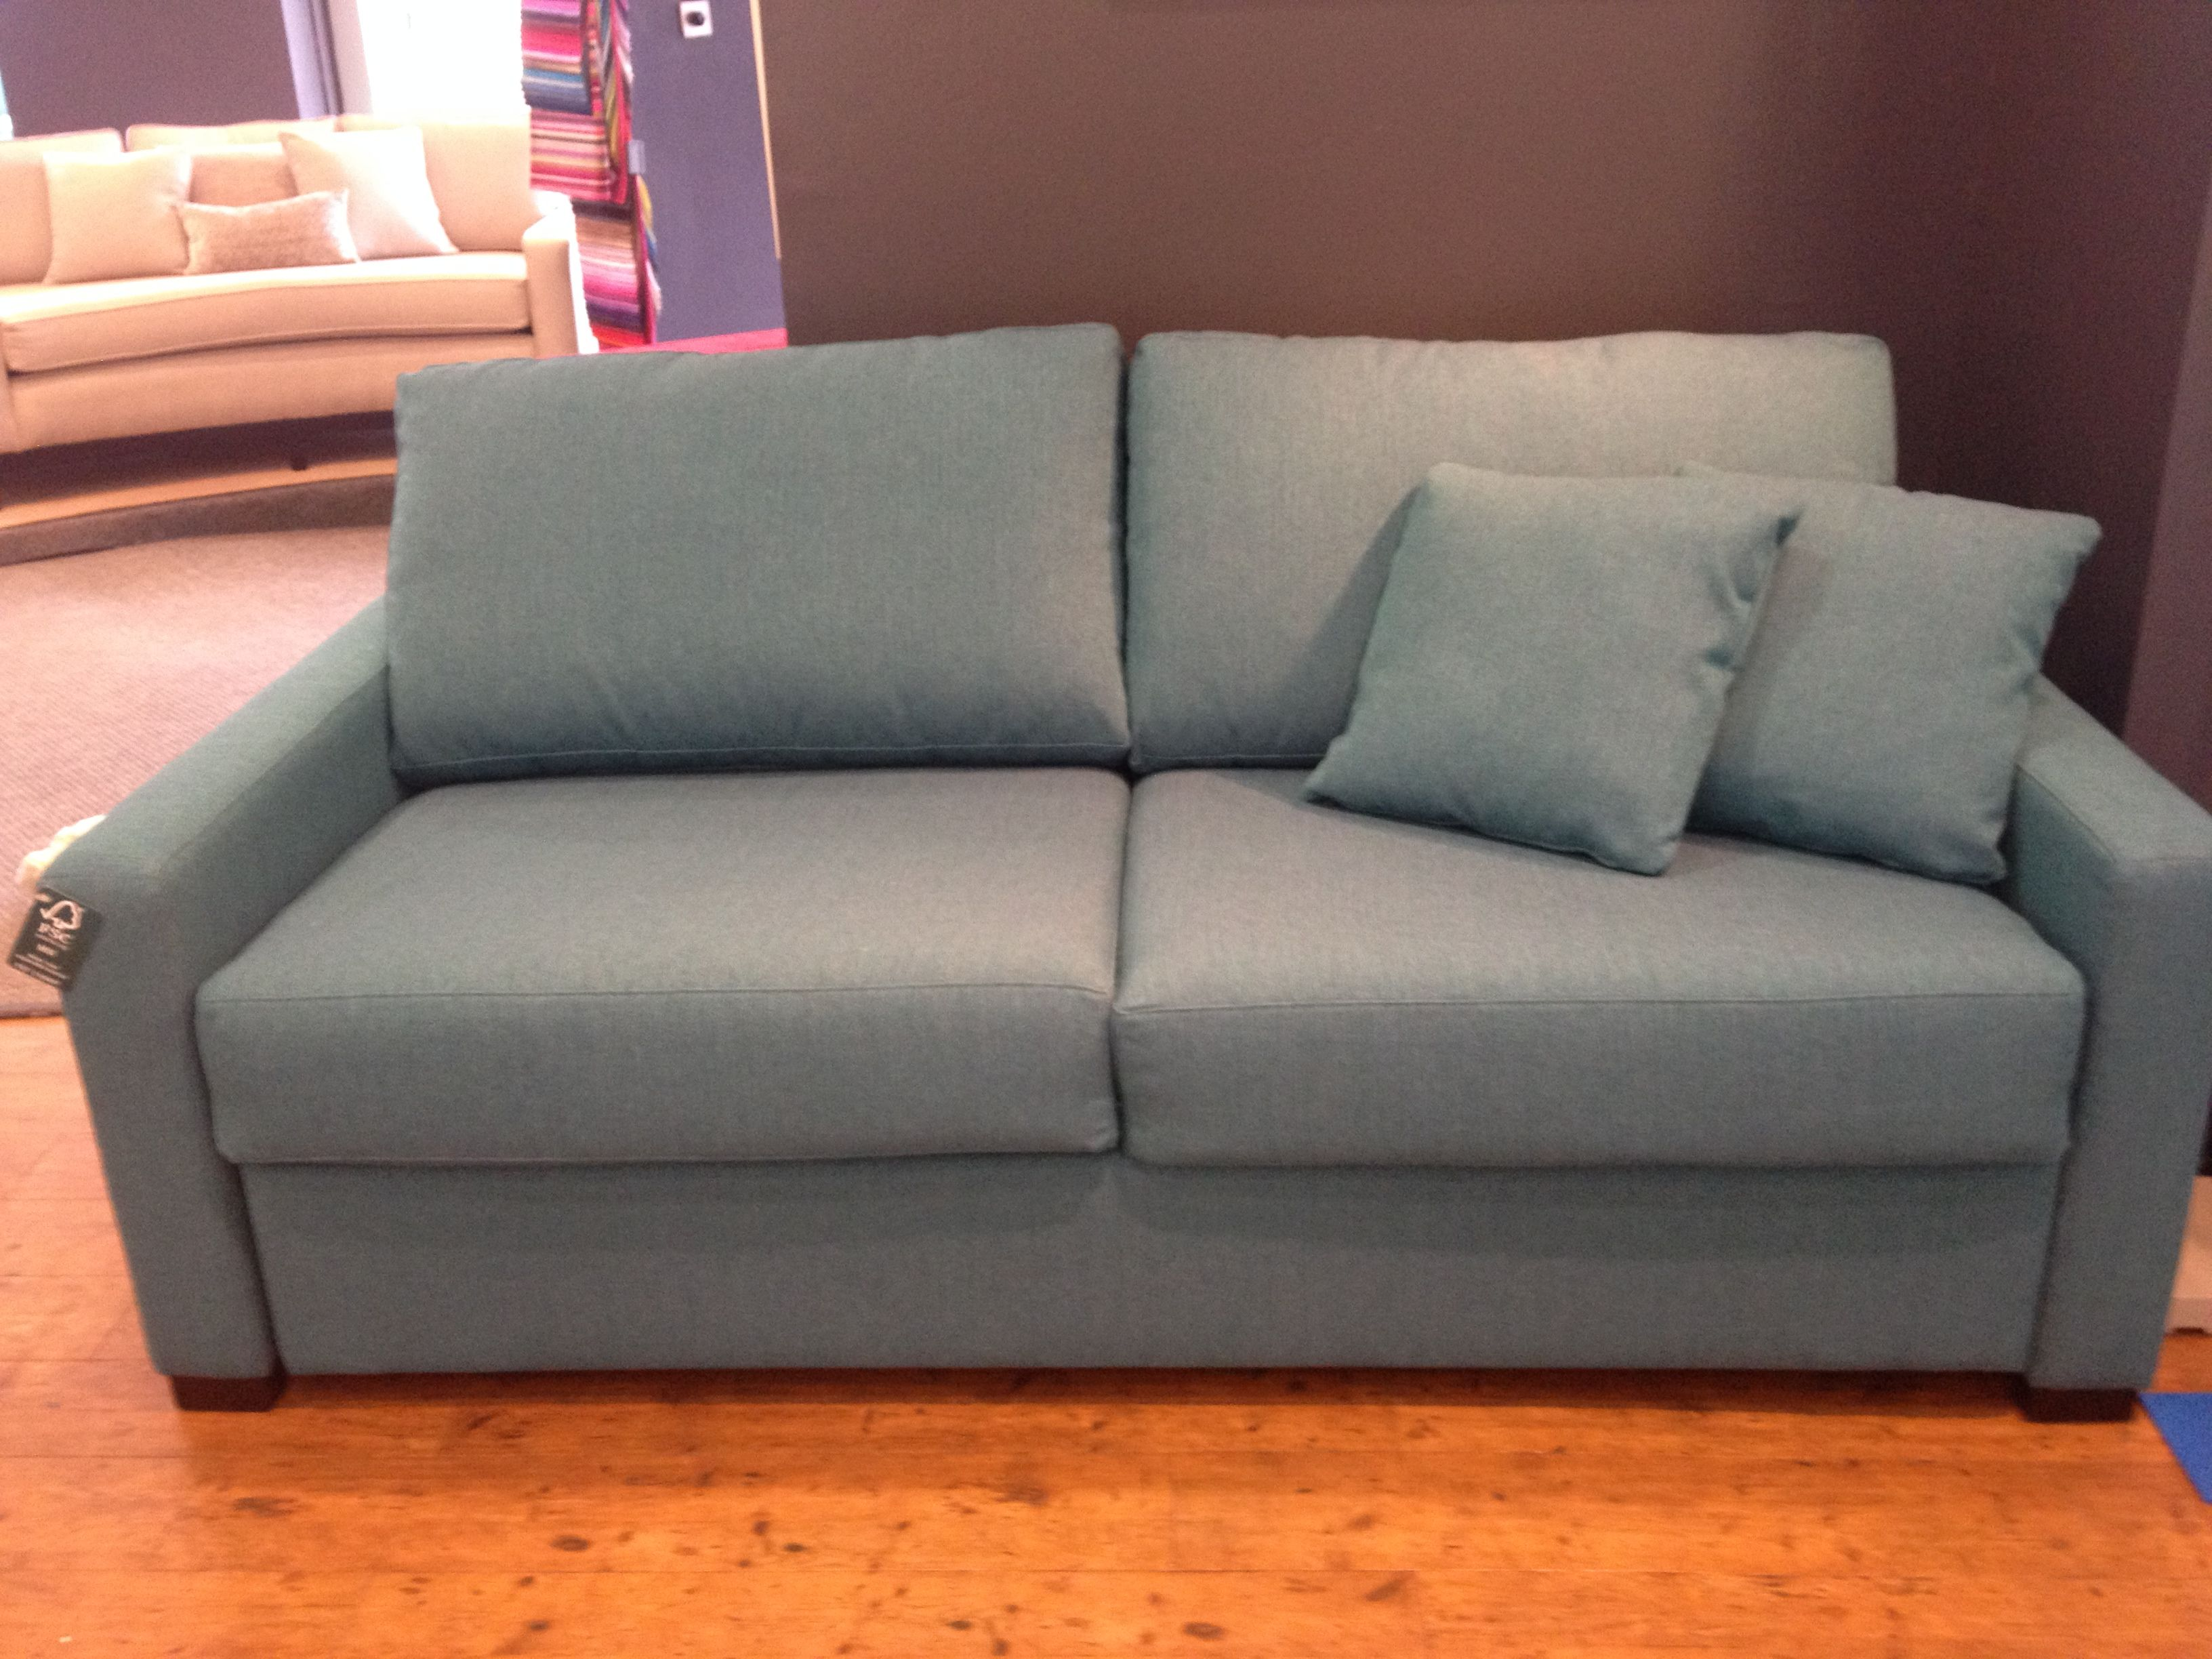 Turquoise fabric covered sofa bed, 186 cm width using the ...